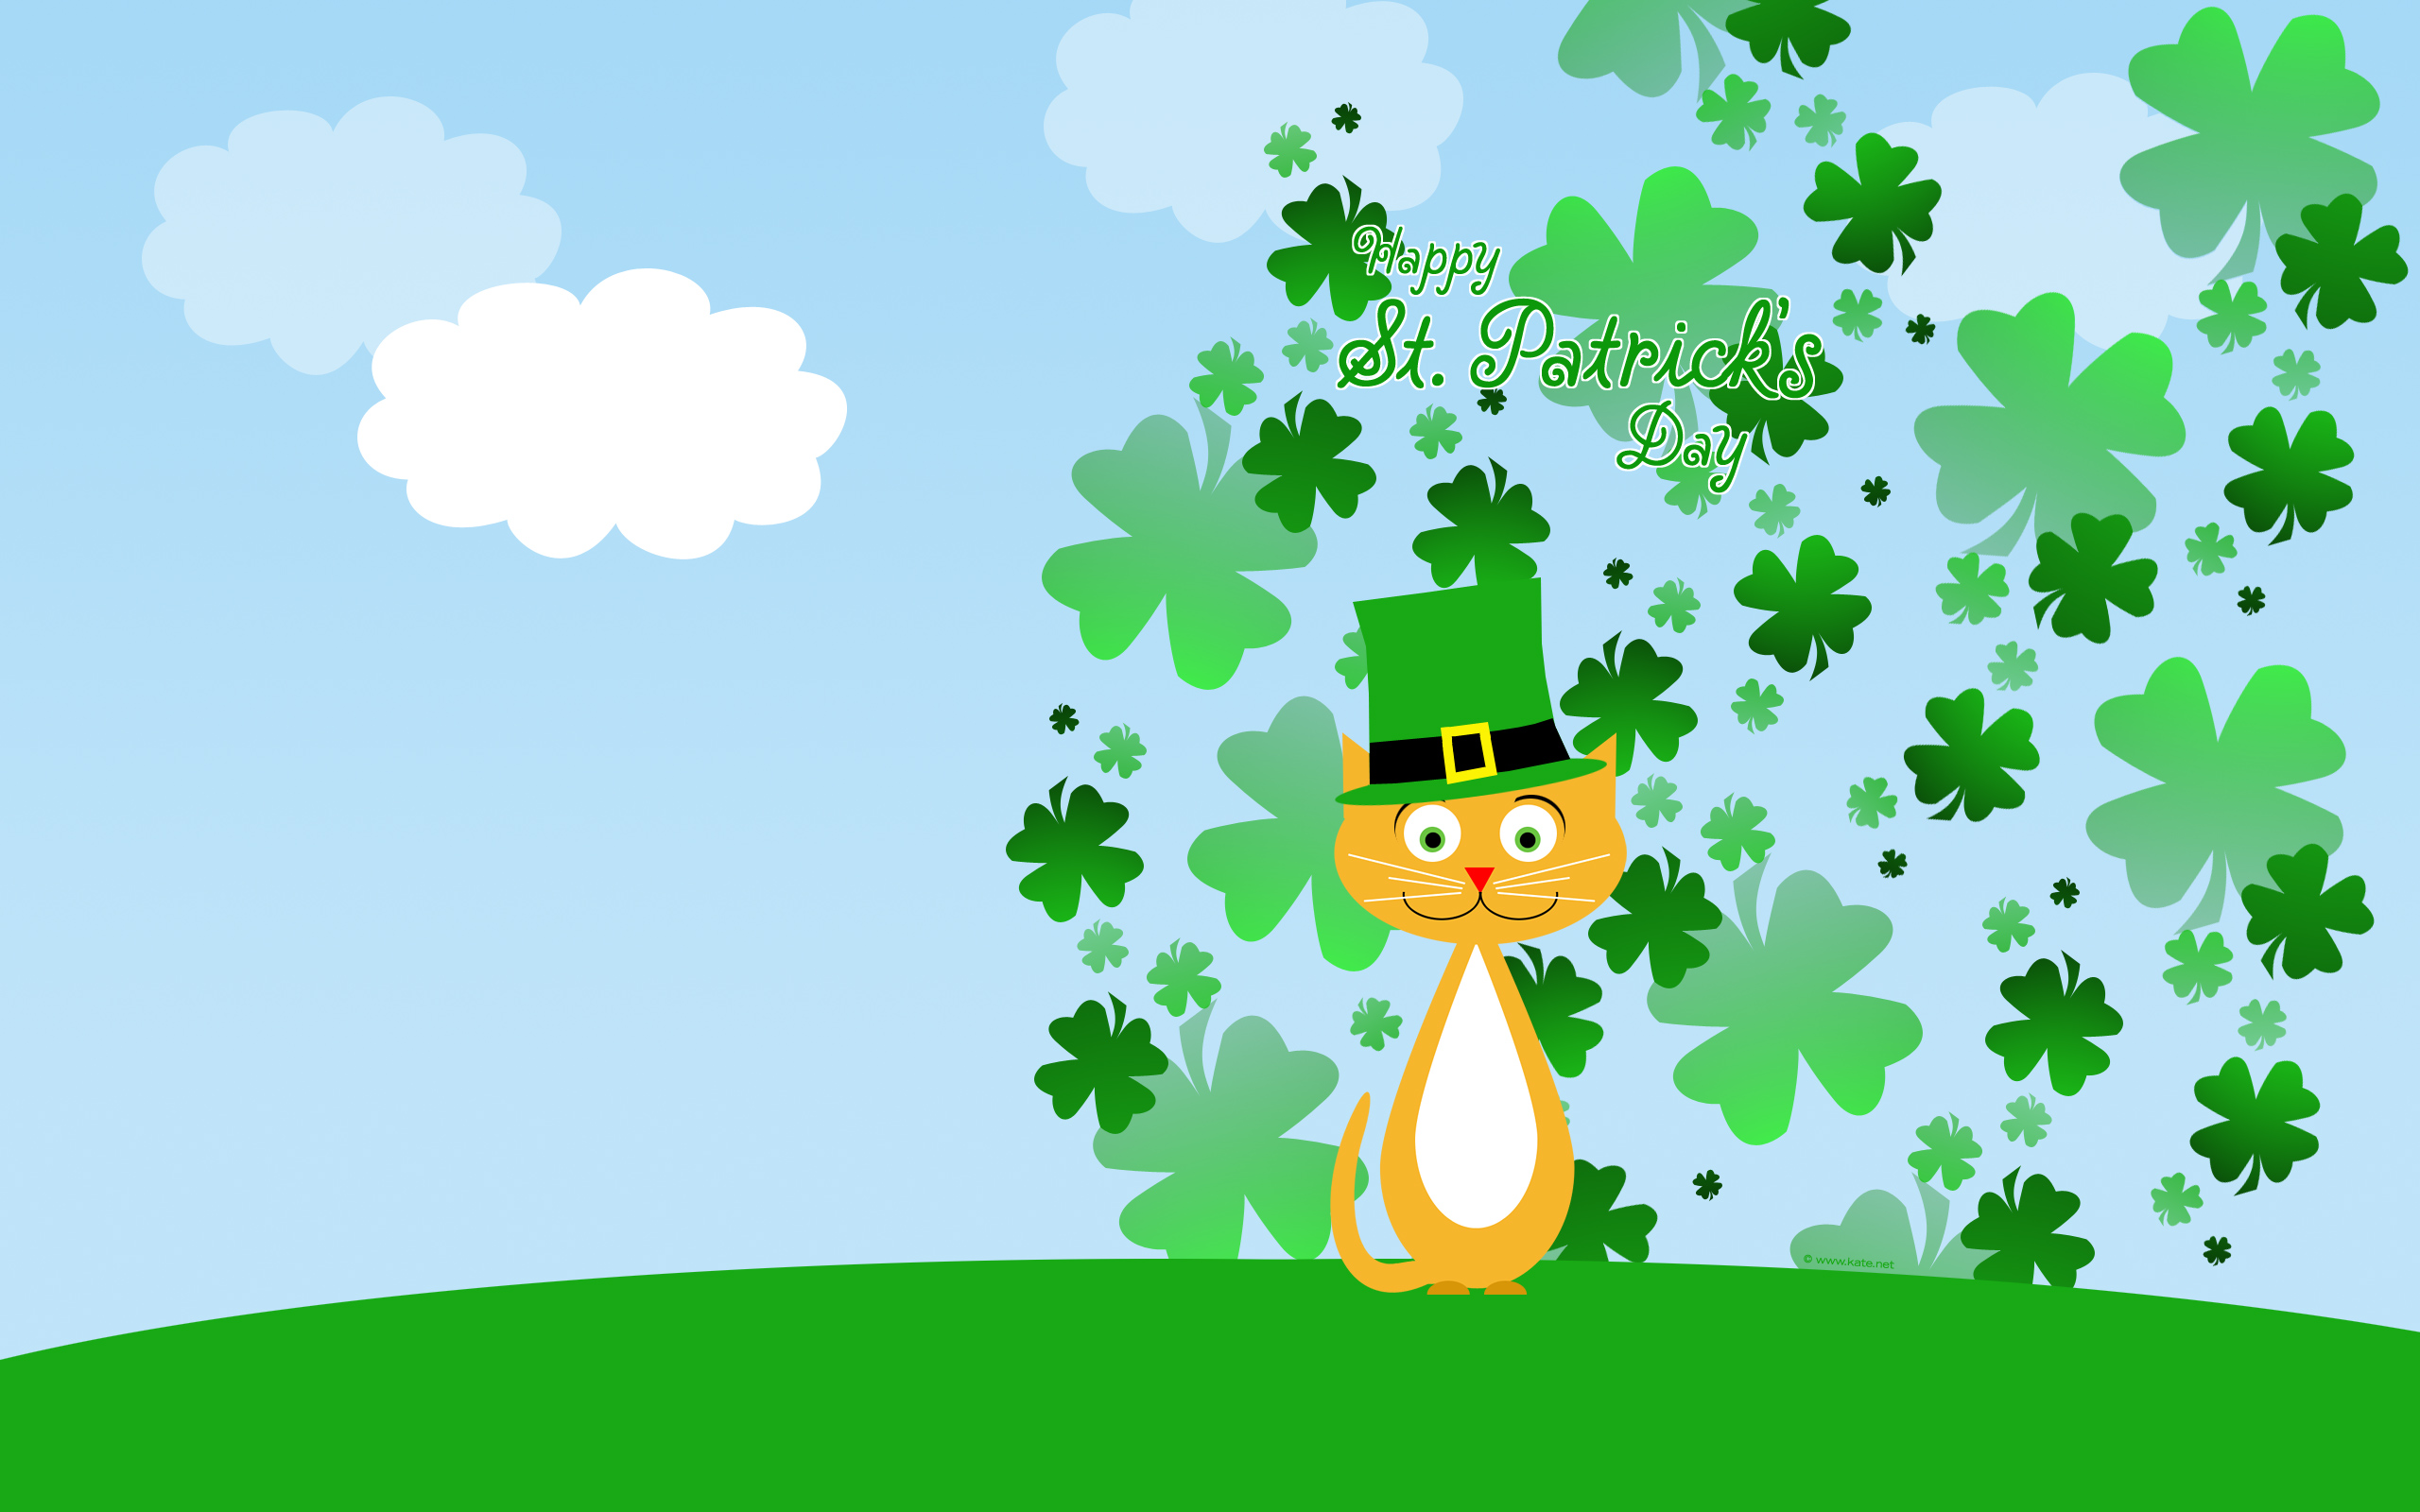 St Patricks Day Cat Wallpaper K9QQK25 2560x1600 px   Picseriocom 2560x1600